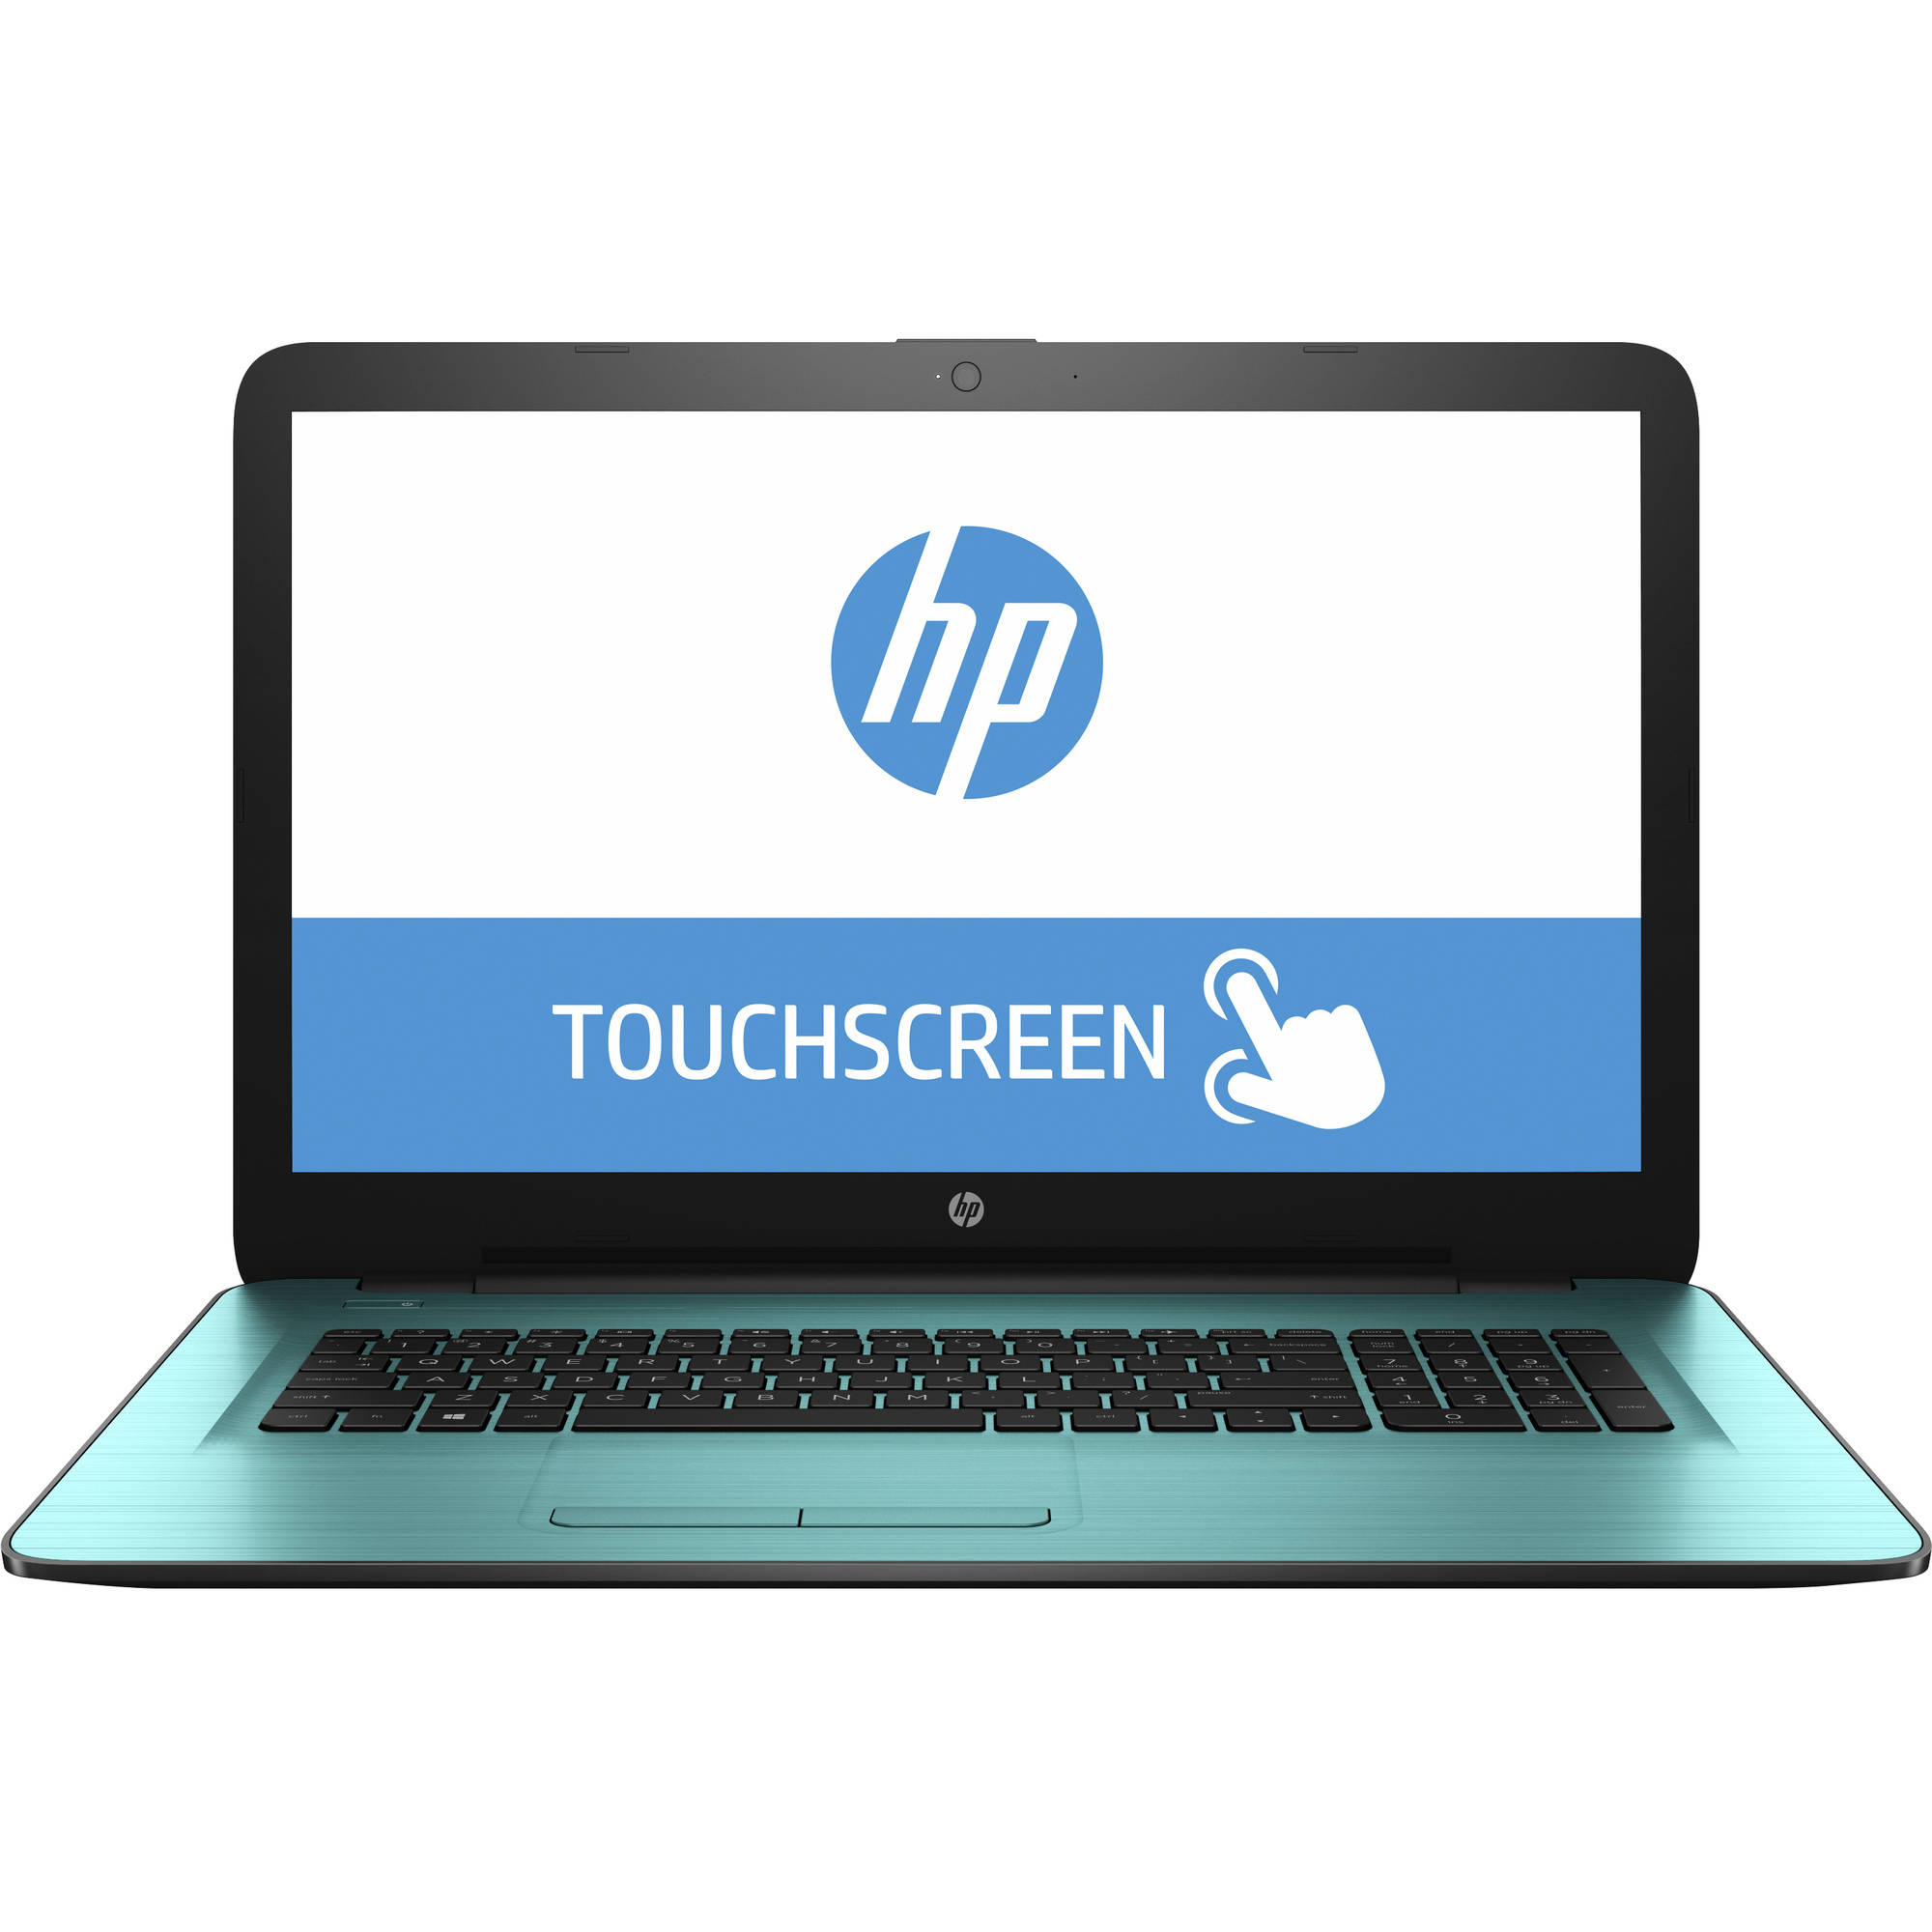 "Refurbished HP 17-x008ds 17.3"" Laptop, Touchscreen, Windows 10, Intel Pentium N3710, 8G RAM, 1TB Hard Drive"